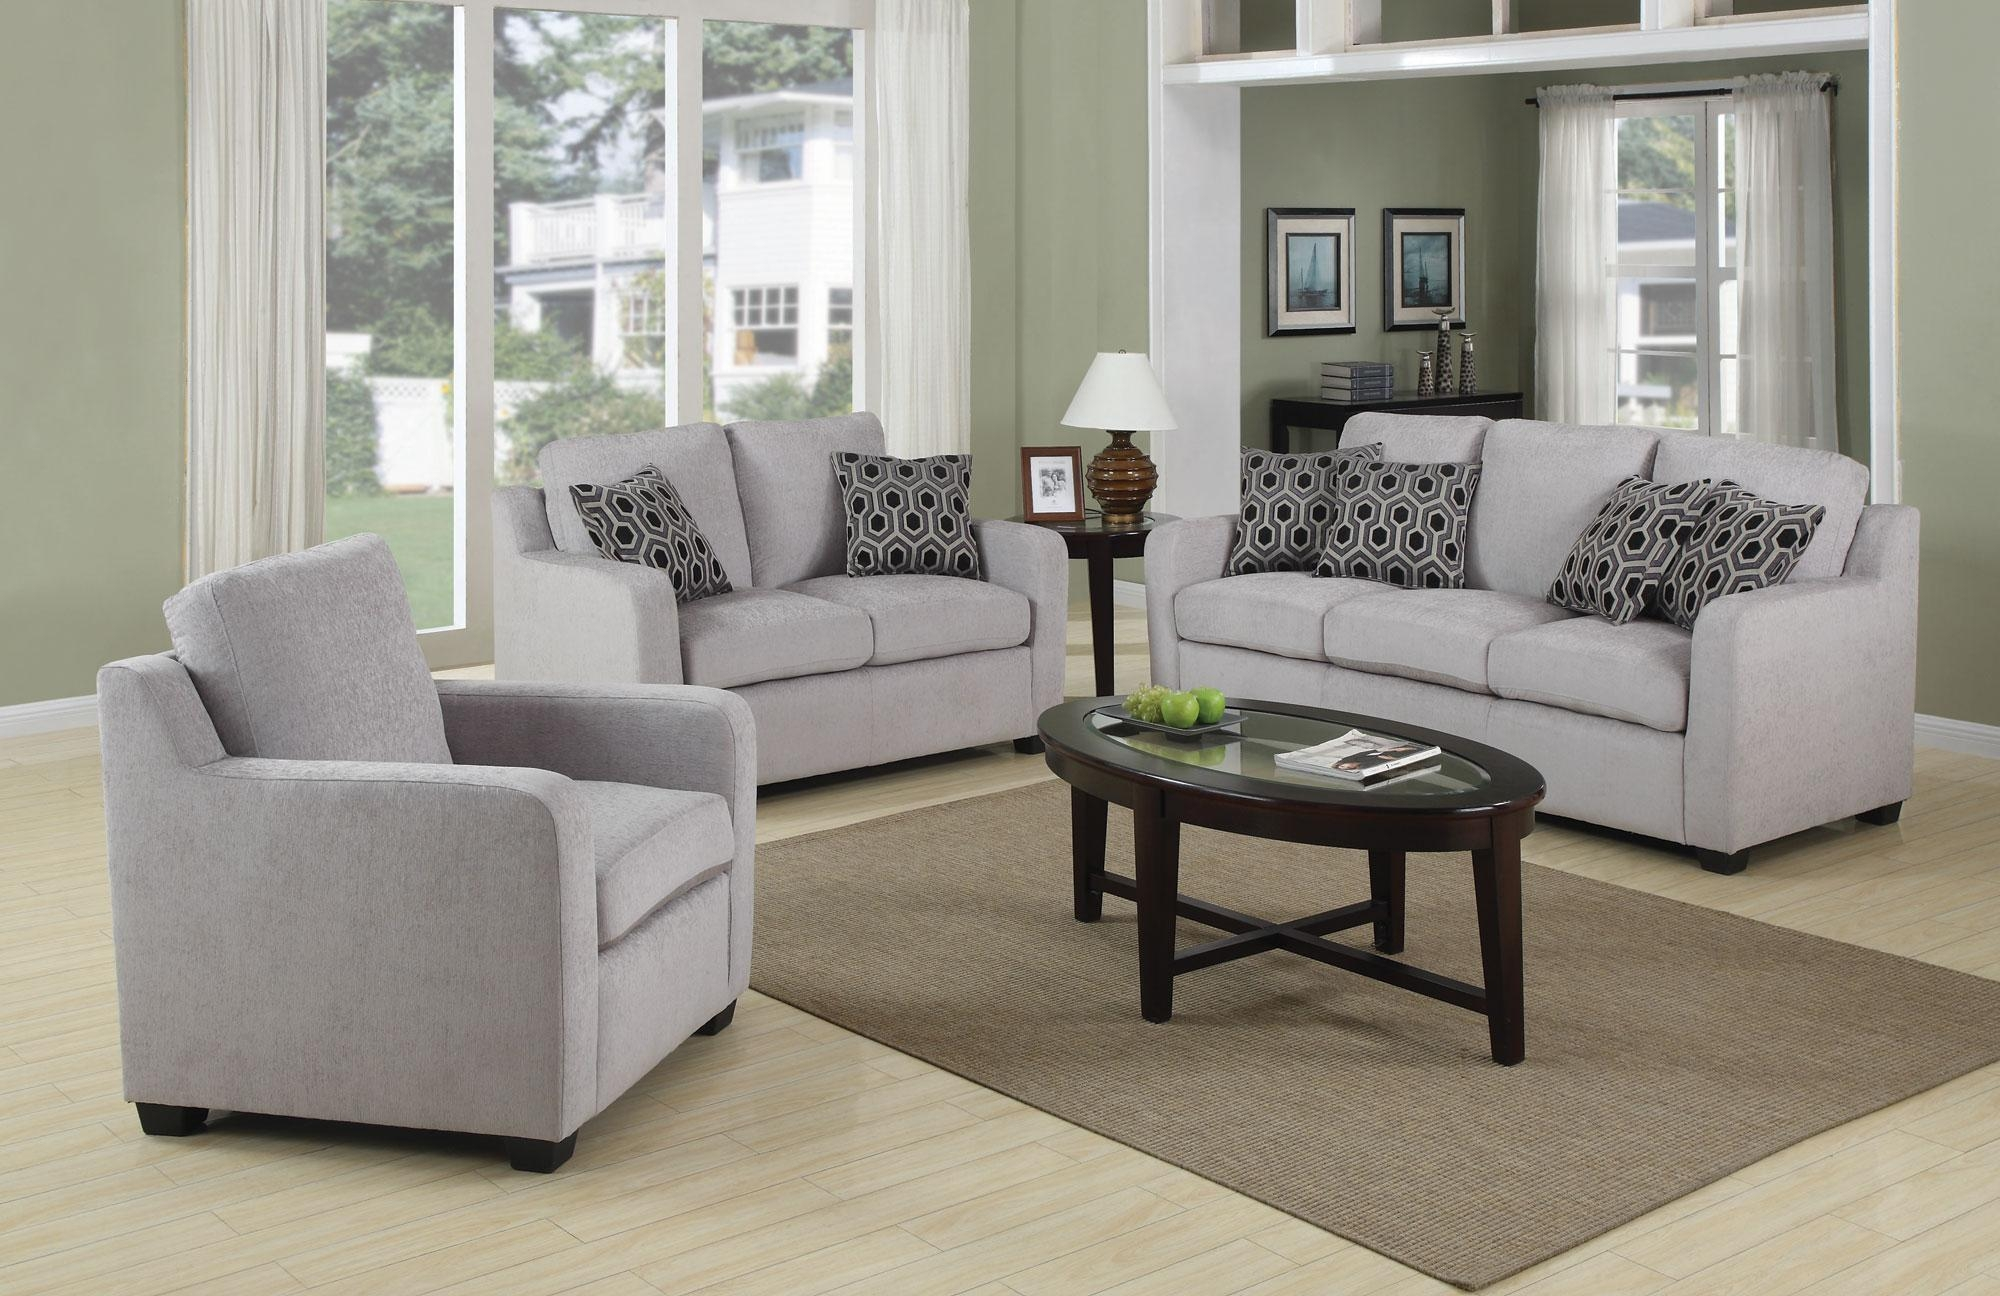 Furniture: Amazing Set Of Chairs For Living Room Setting Furniture Pertaining To Living Room Sofa Chairs (View 8 of 20)